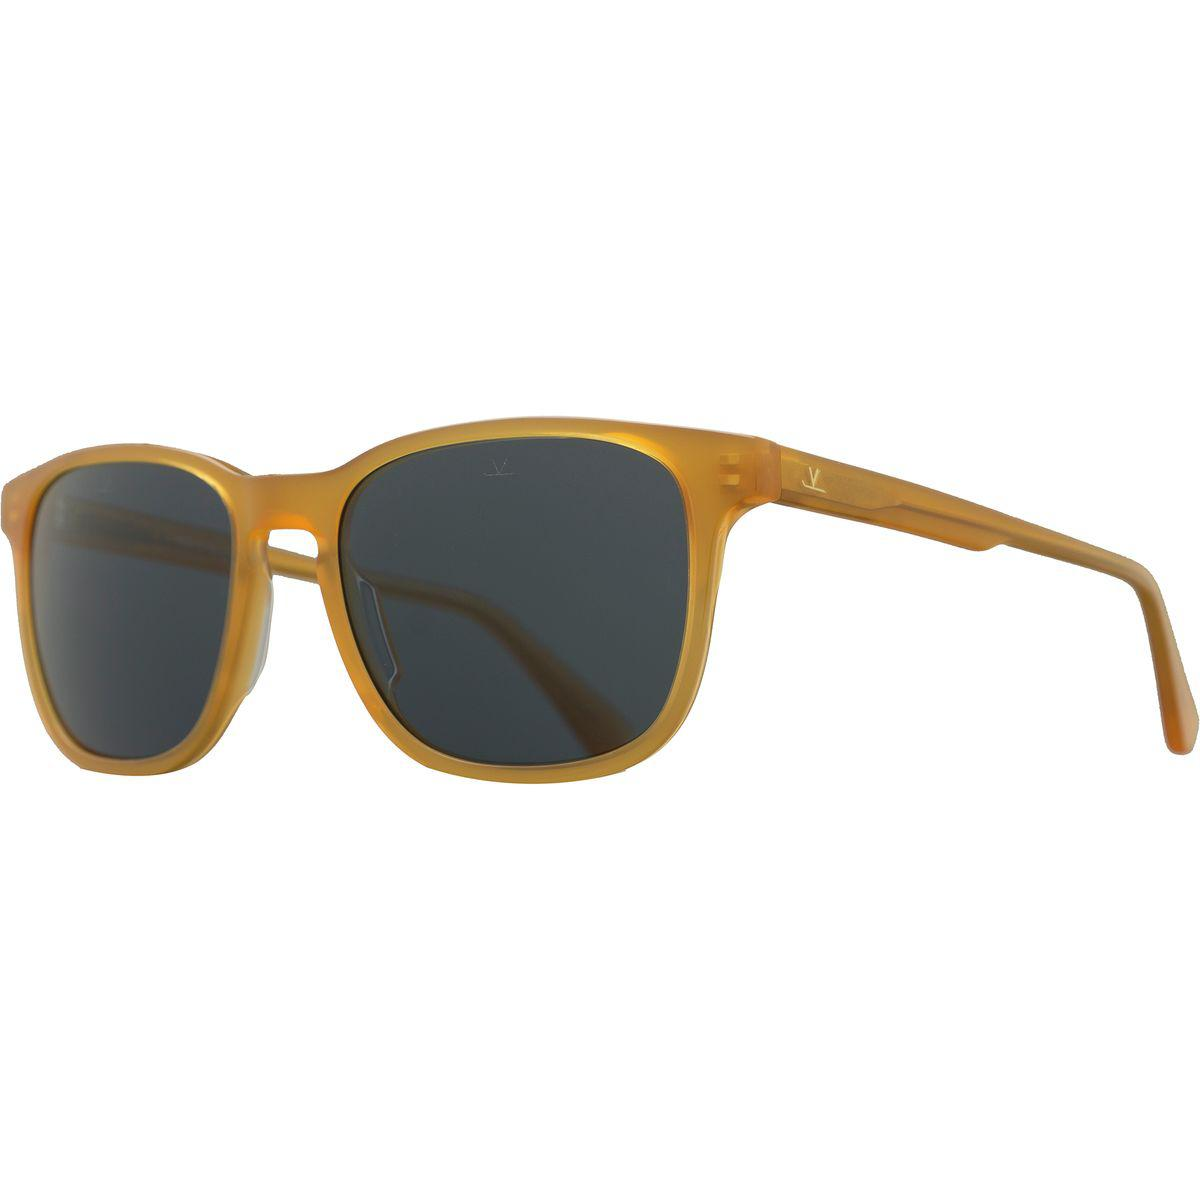 d03fde879f4 Lyst - Vuarnet Square District Vl 1618 Sunglasses - Polarized in ...